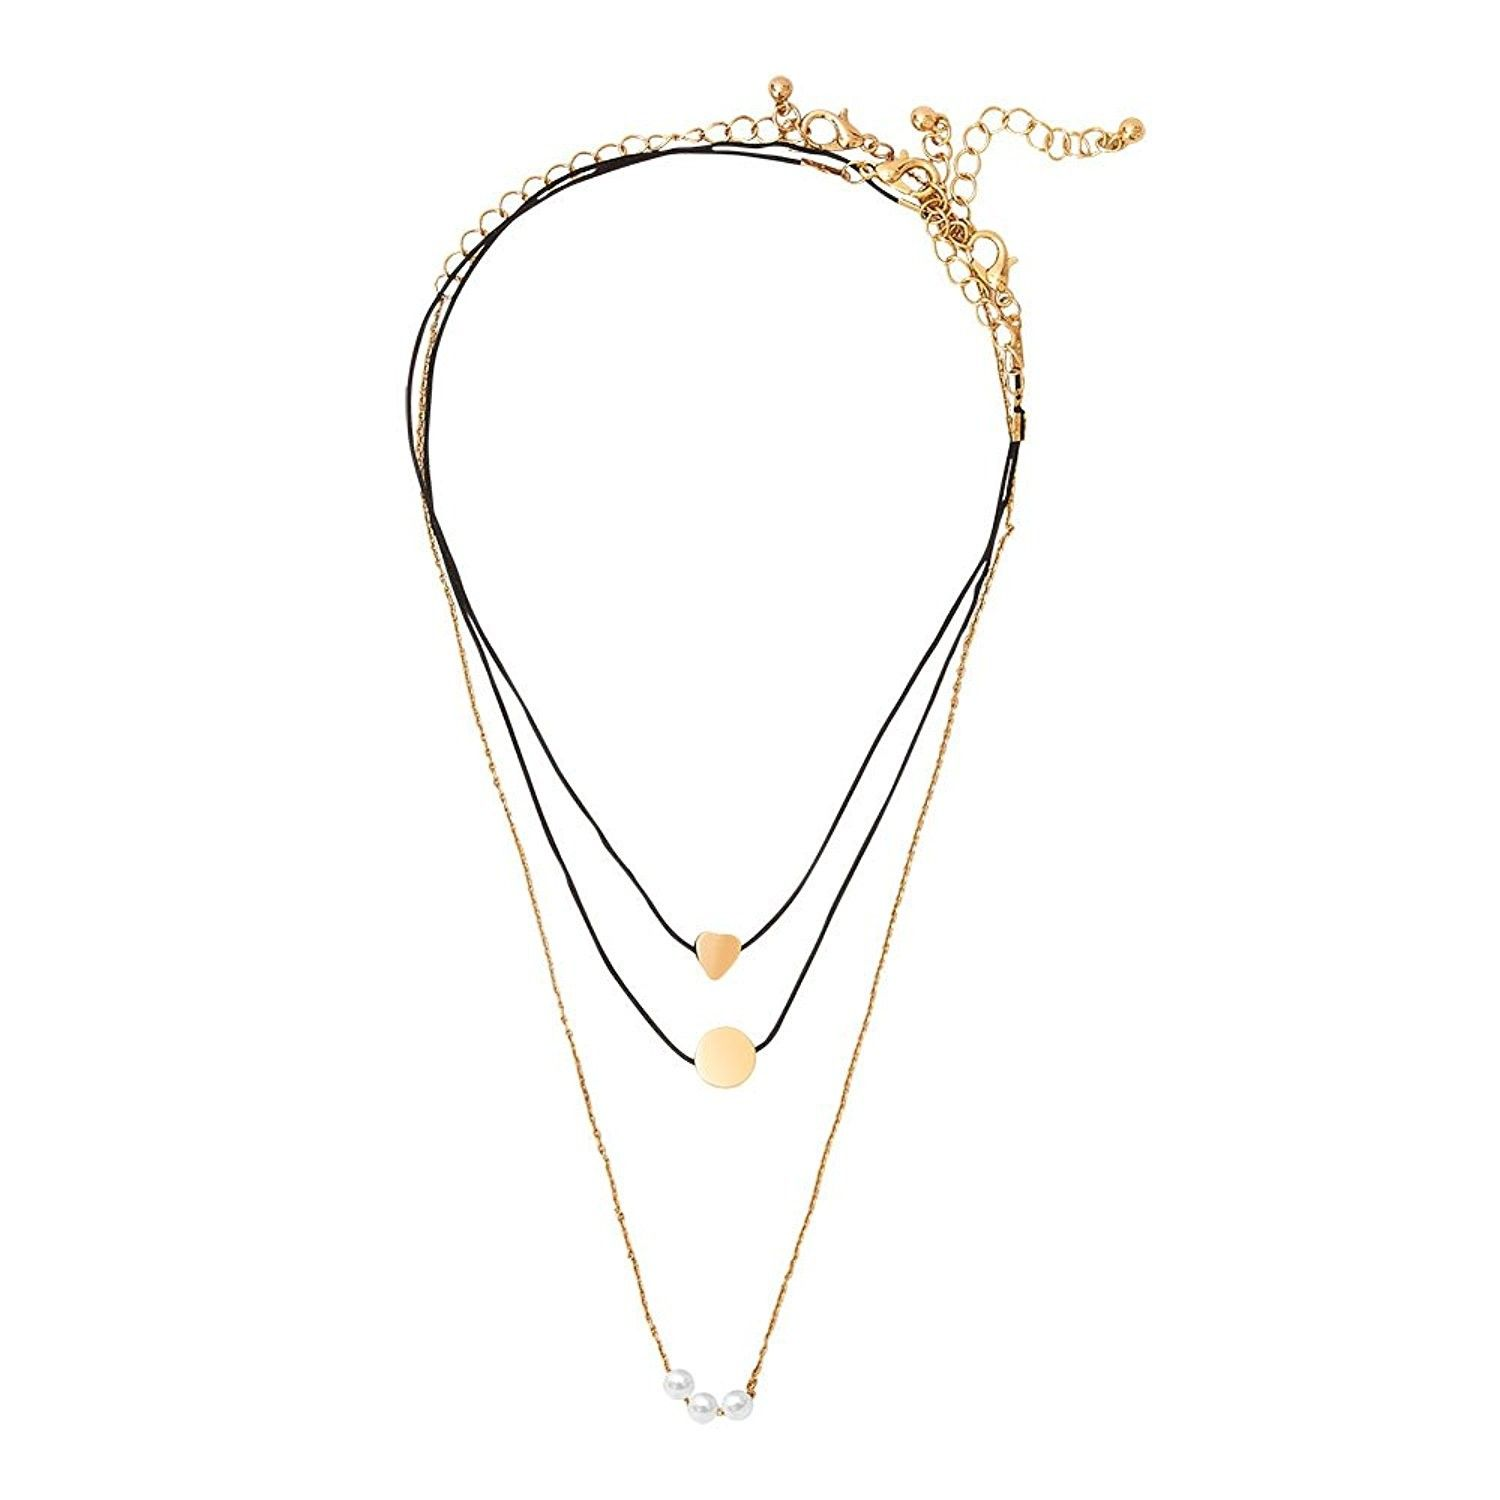 Choker necklace set pearl pendant necklaces for women goldplated